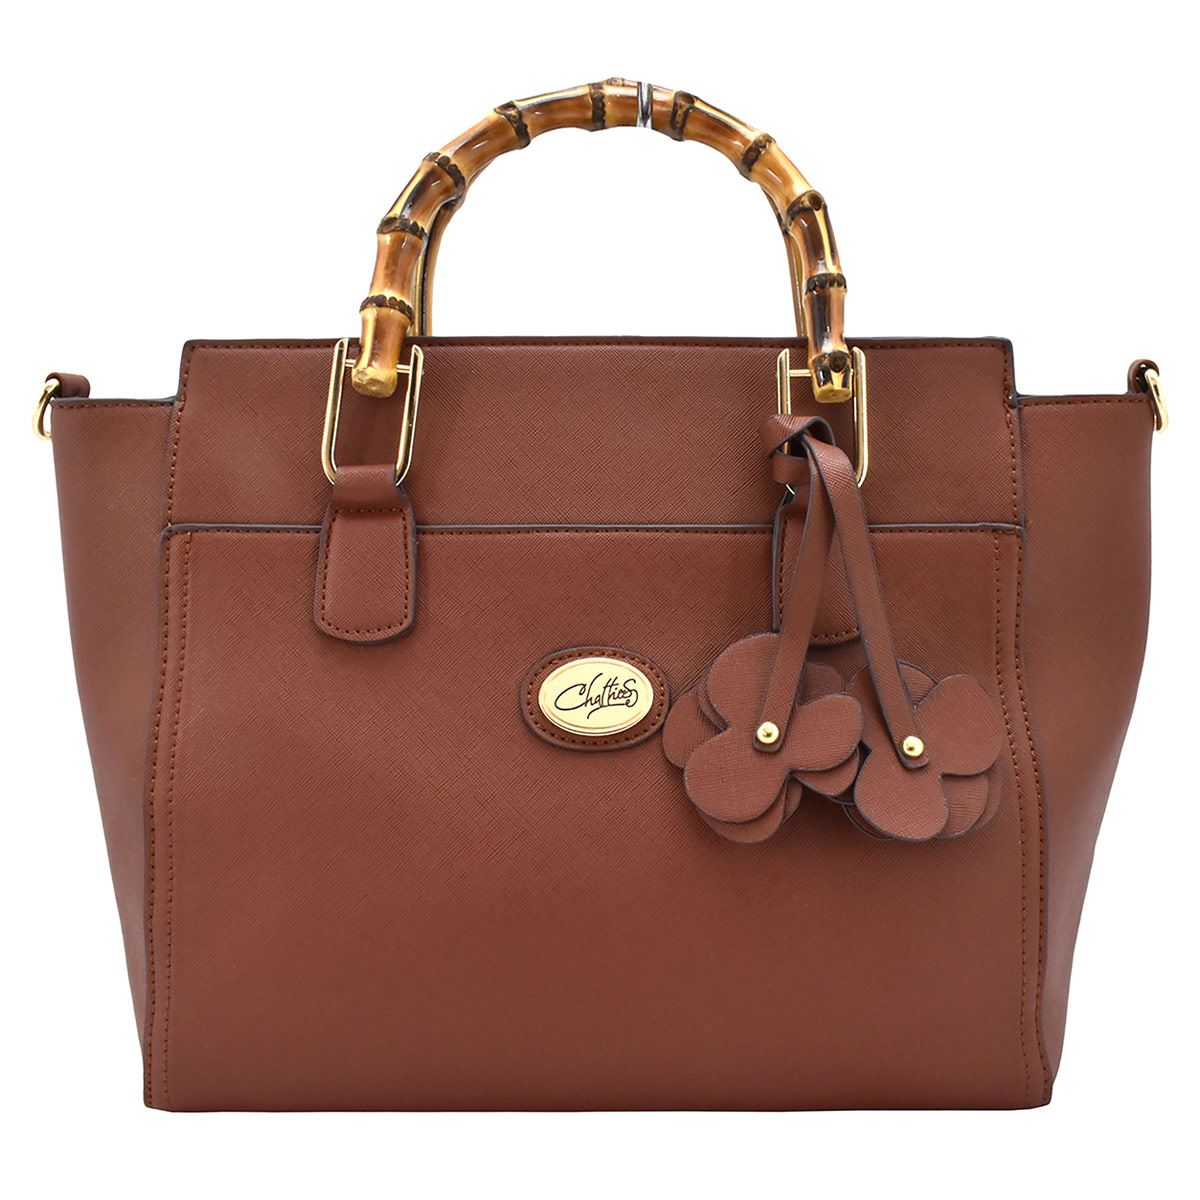 Bolso Chatties tote camel